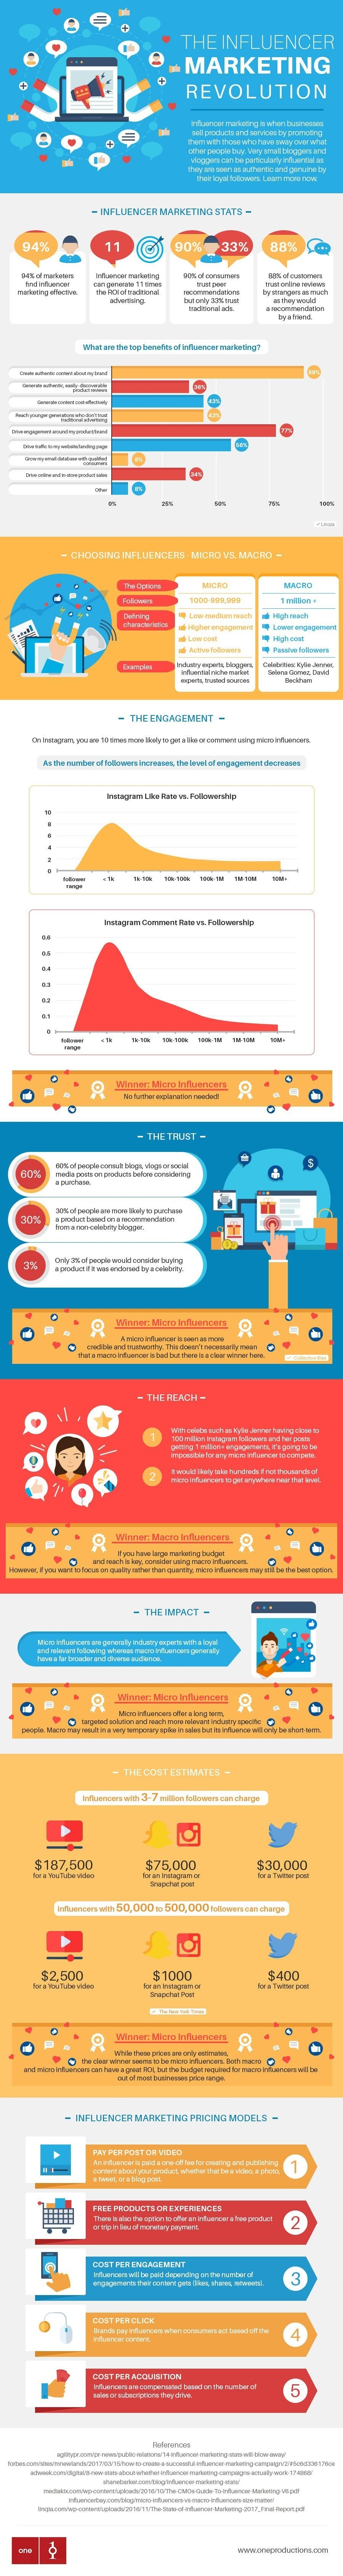 The Influencer Marketing Revolution #infographic